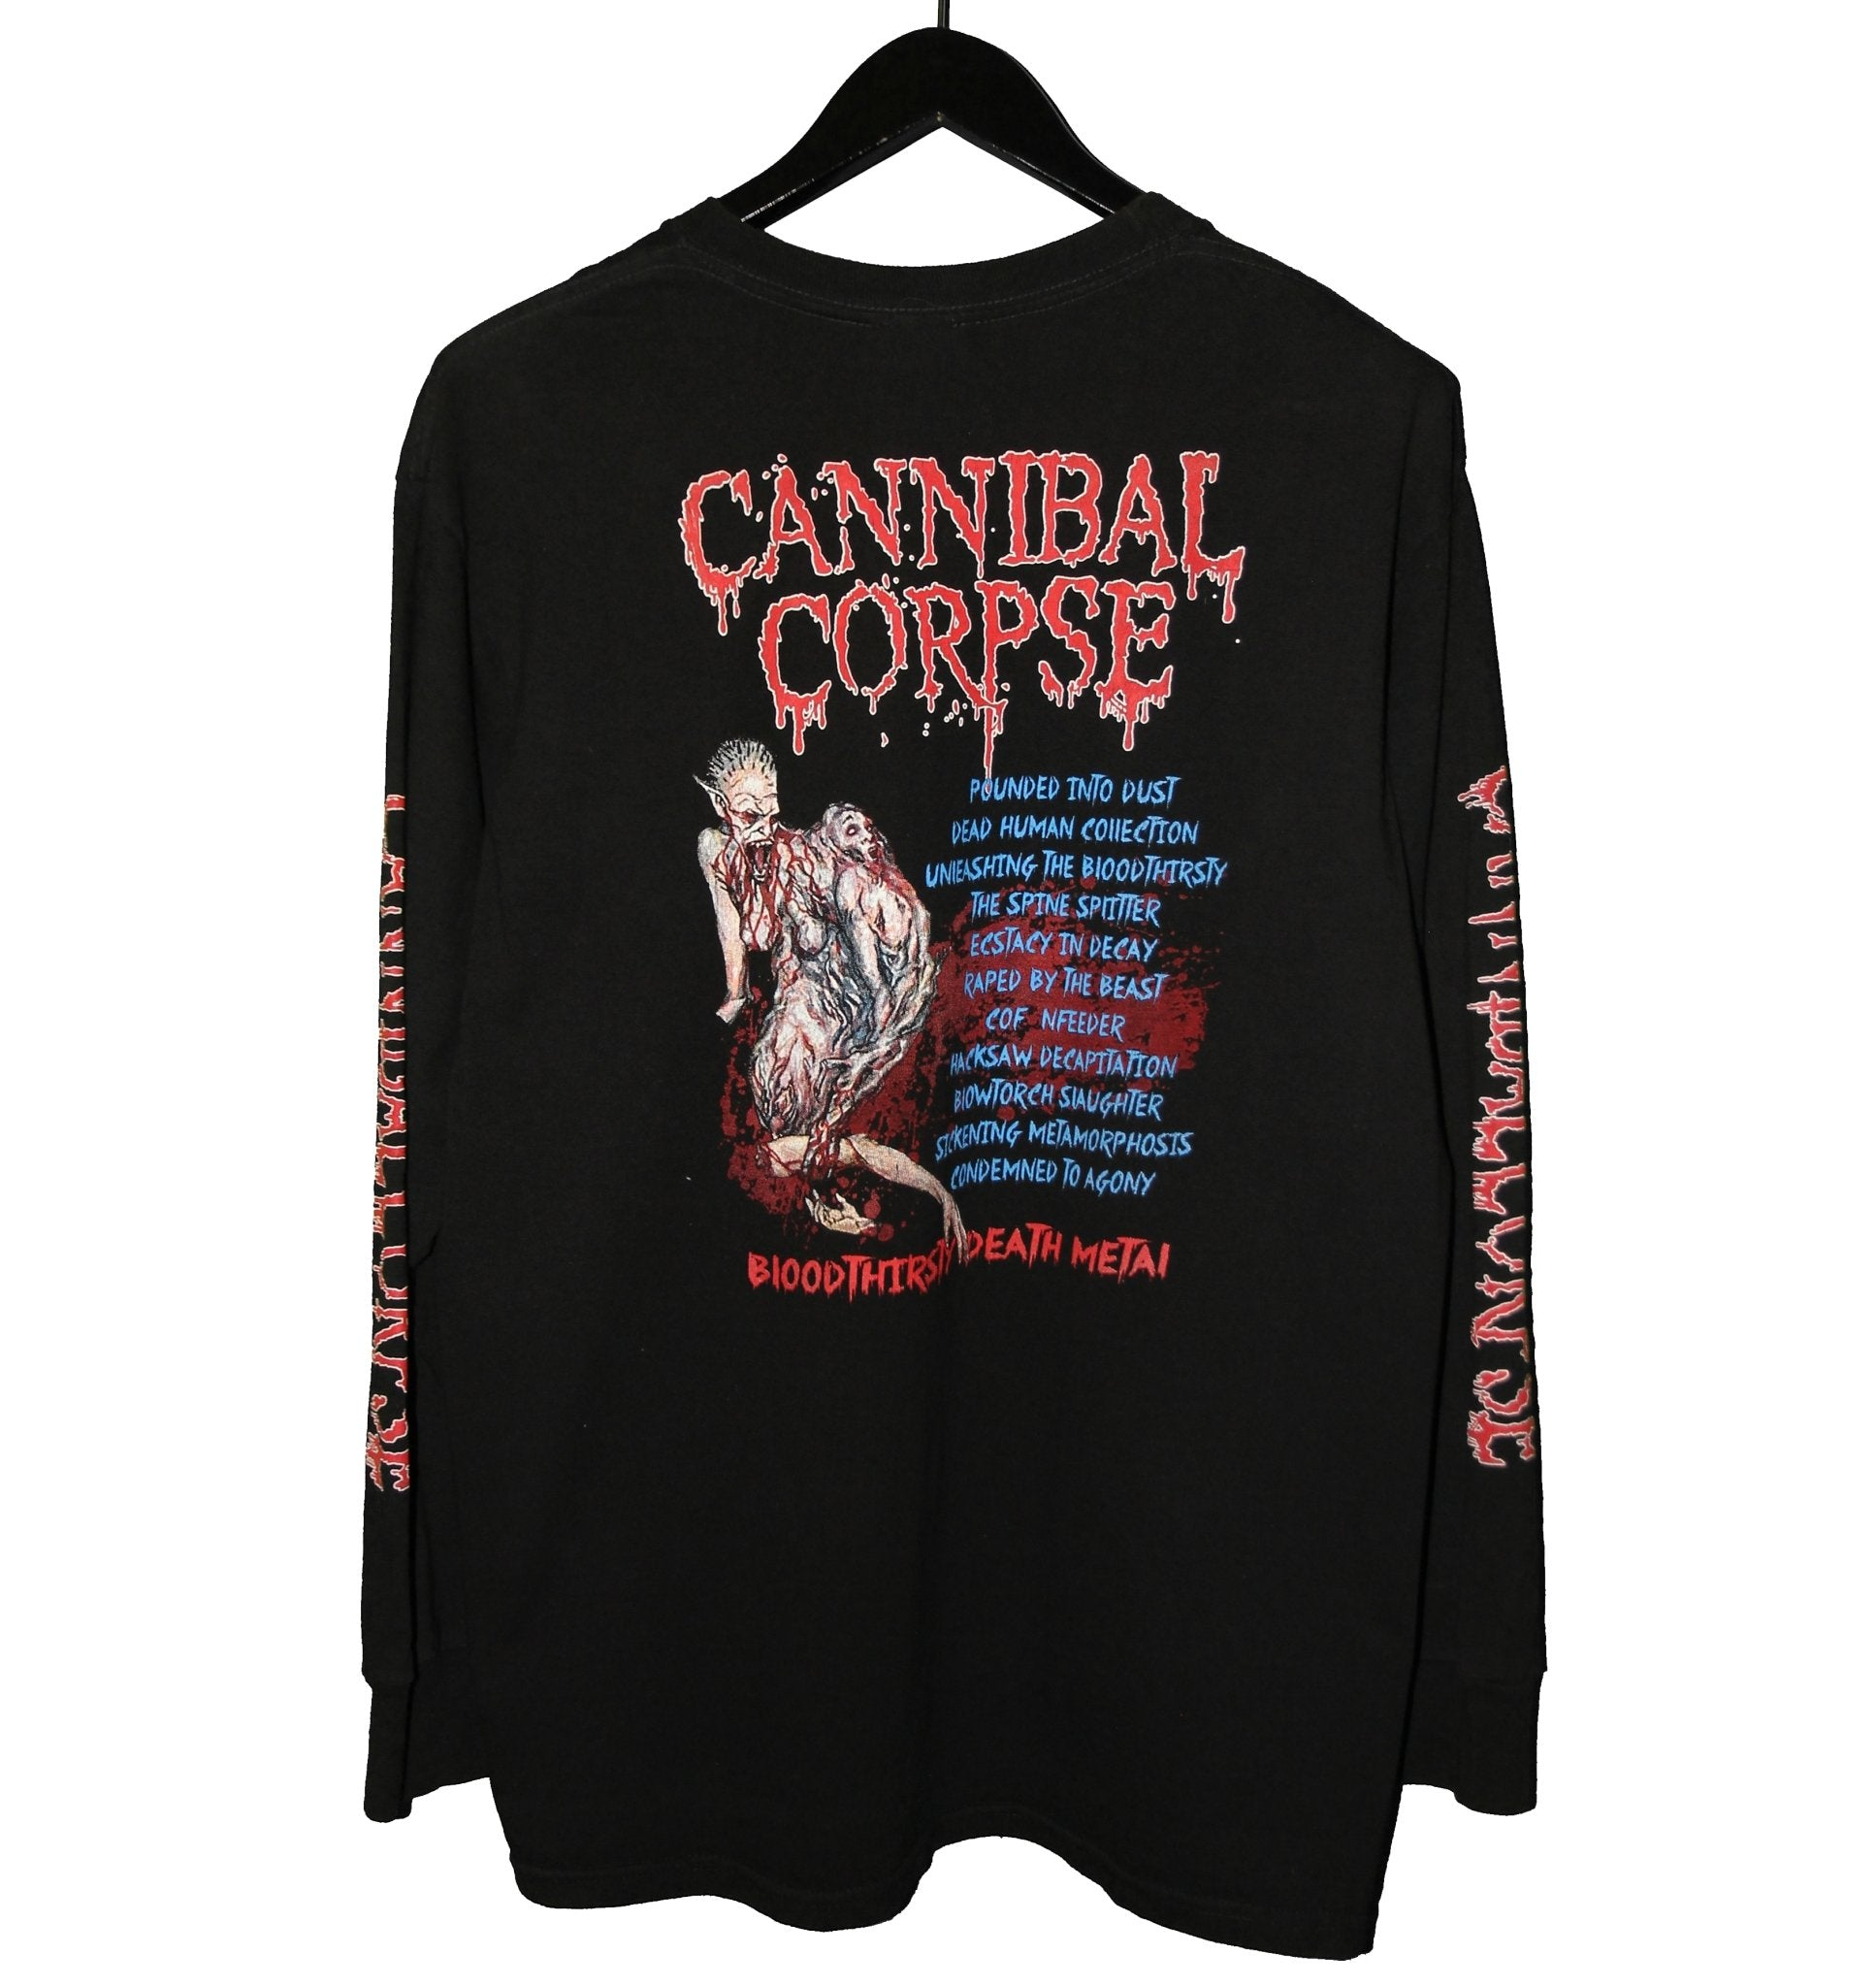 Cannibal Corpse 1999 Bloodthirsty Album Longsleeve - Faded AU